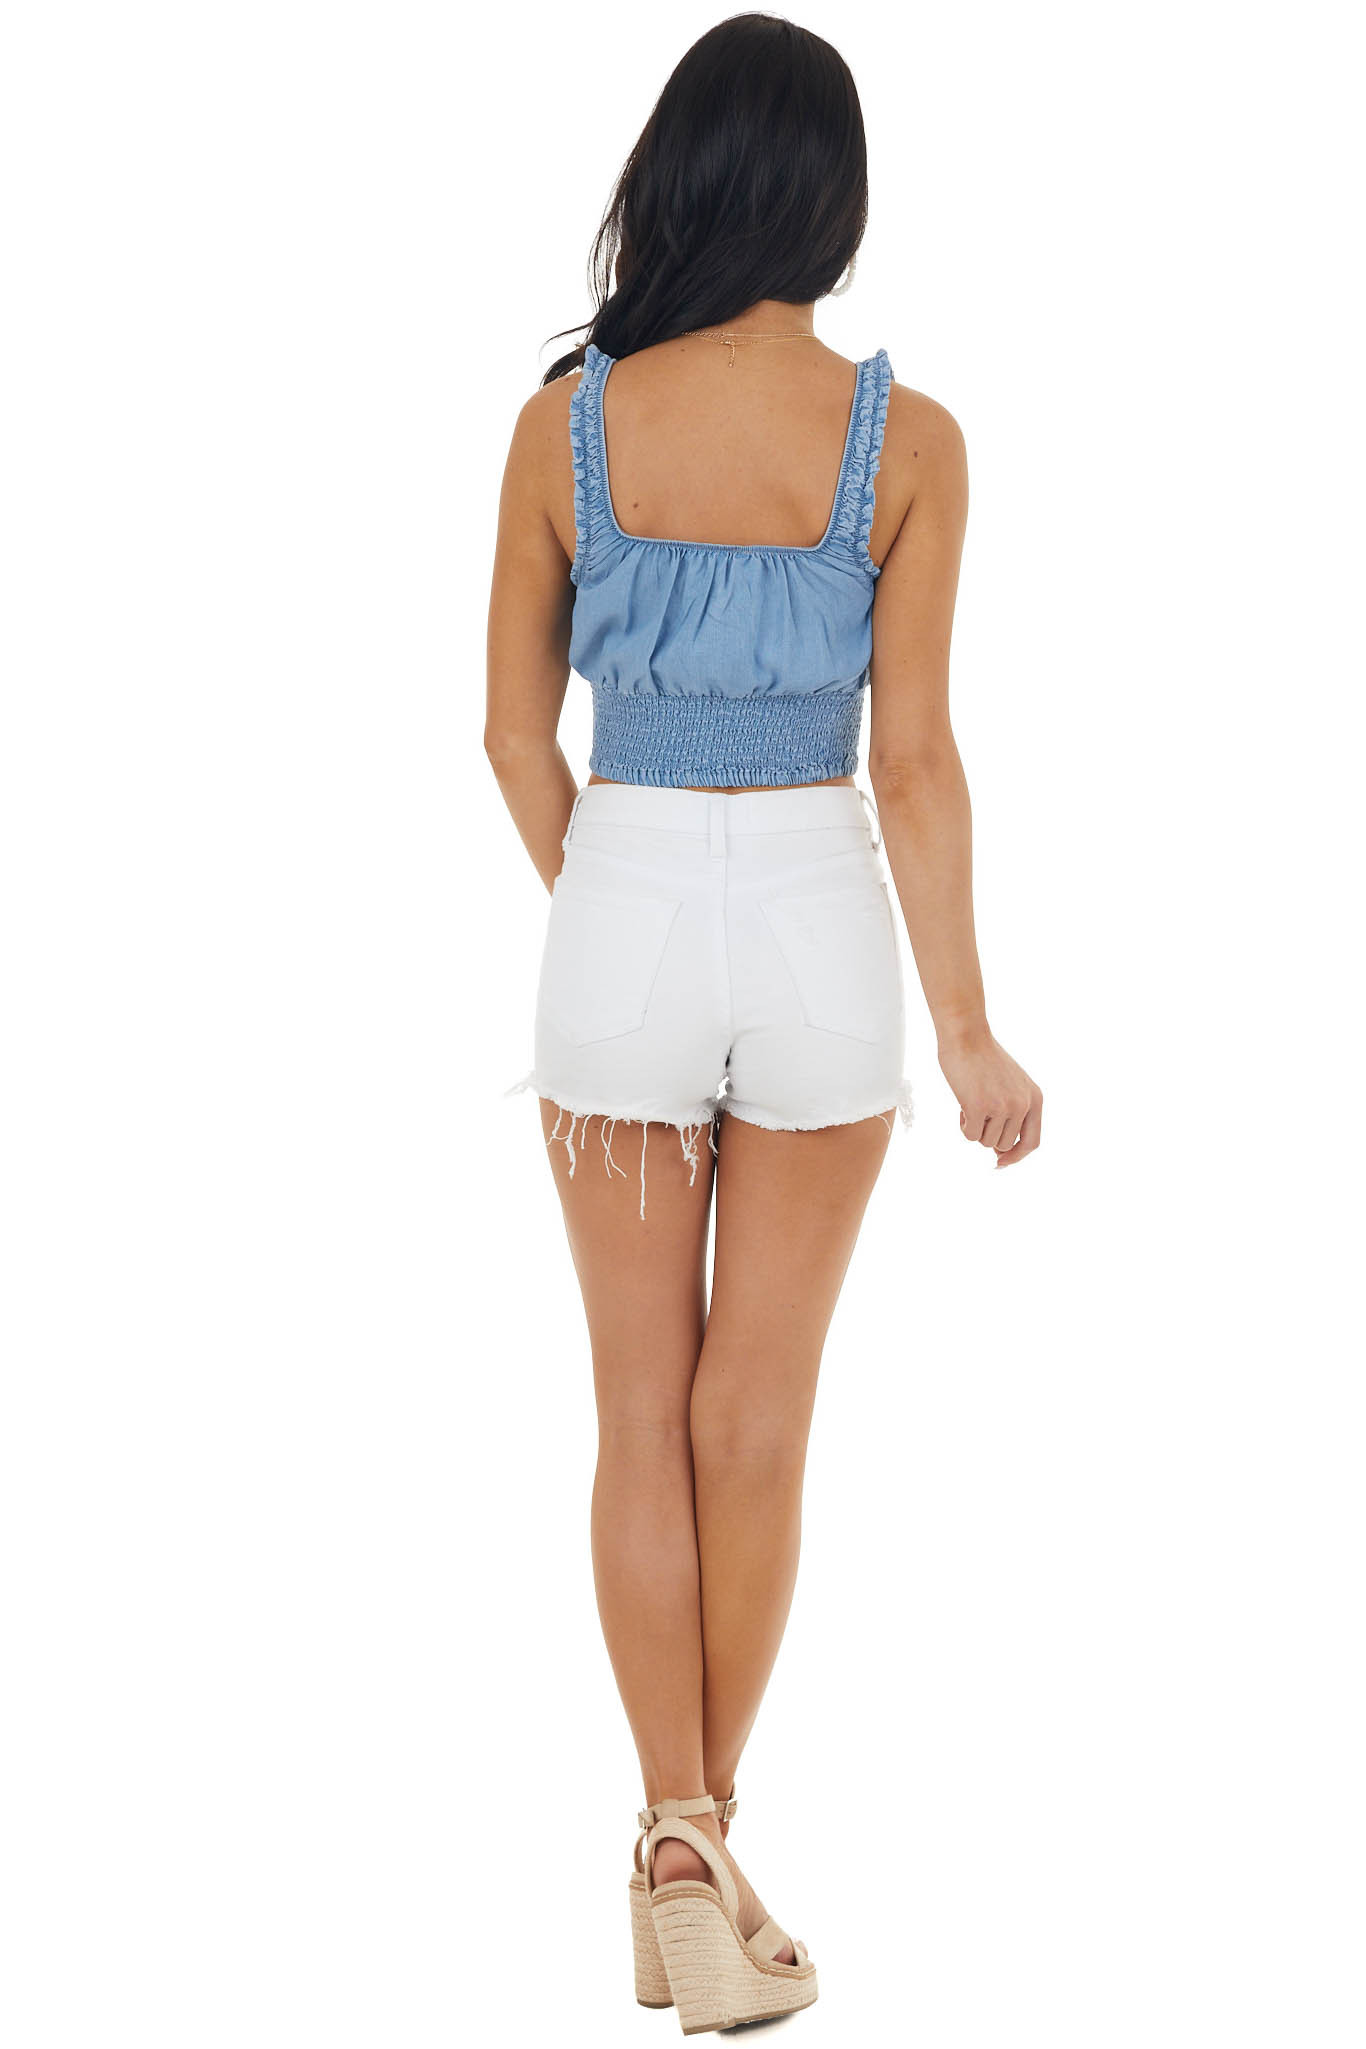 Medium Wash Chambray Smocked Crop Woven Tank Top with Tie